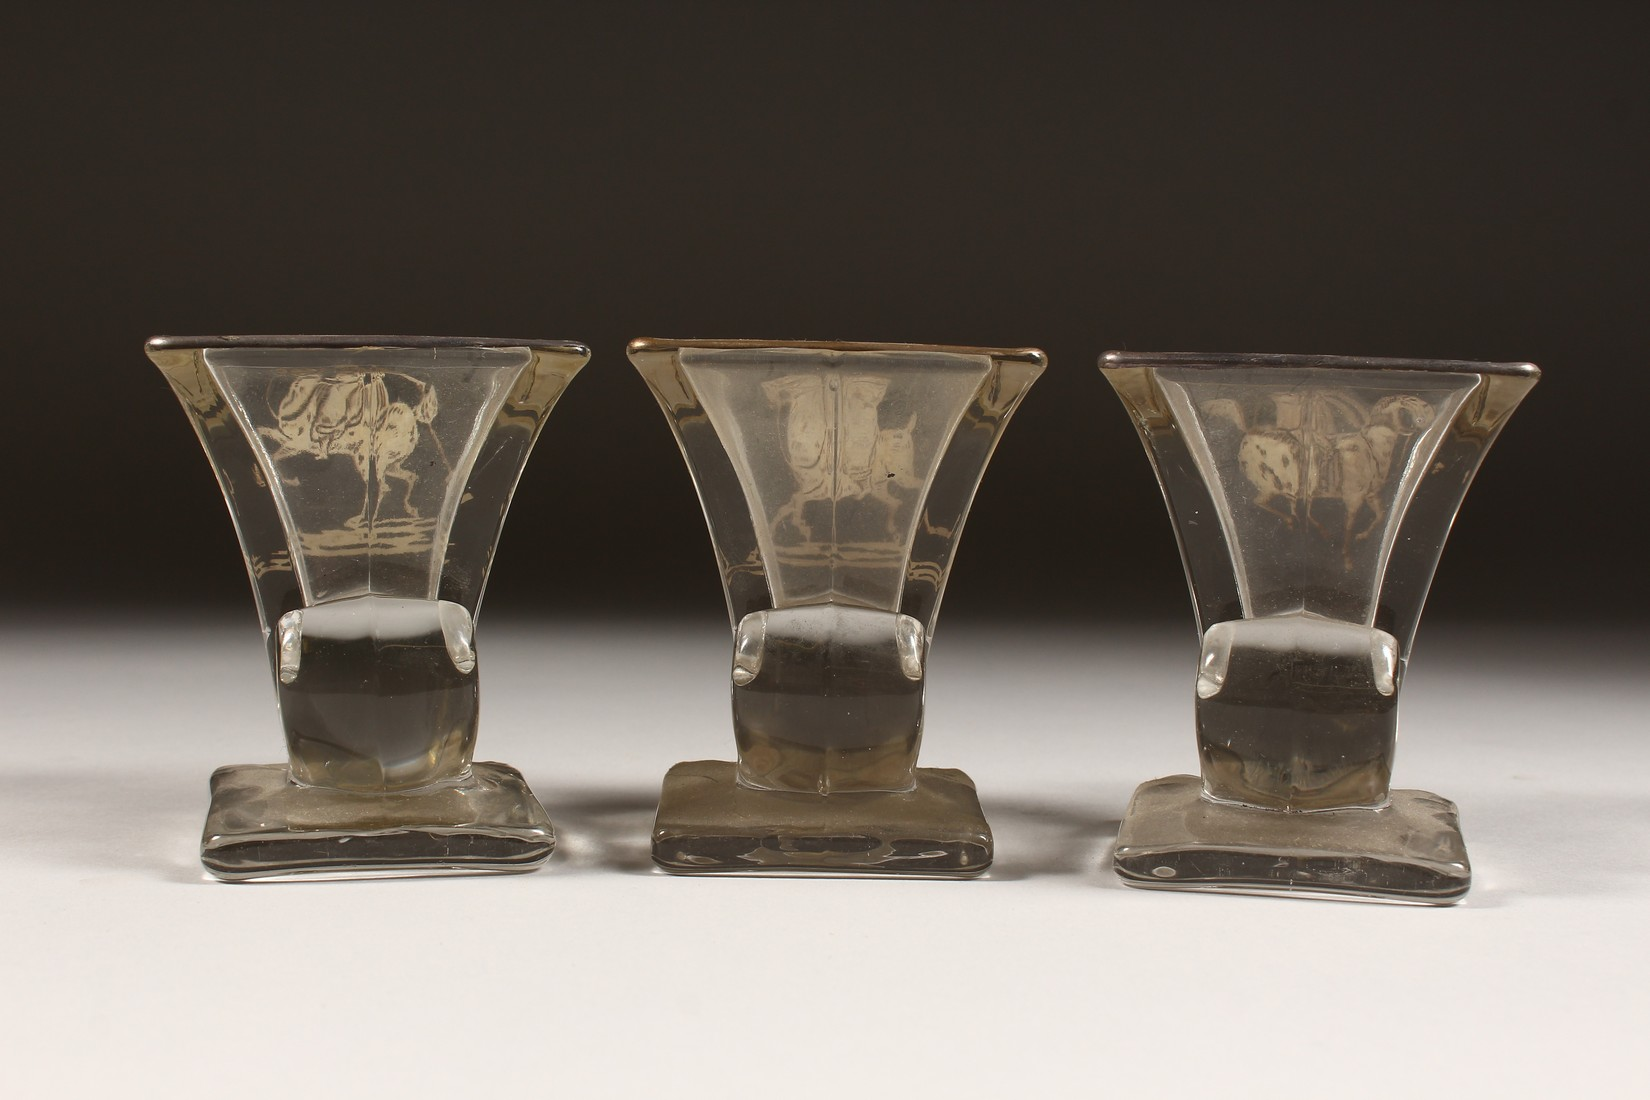 A SET OF THREE SILVER OVERLAY MOULDED GLASS SMALL VASES, decorated with polo players on horseback. - Image 4 of 5